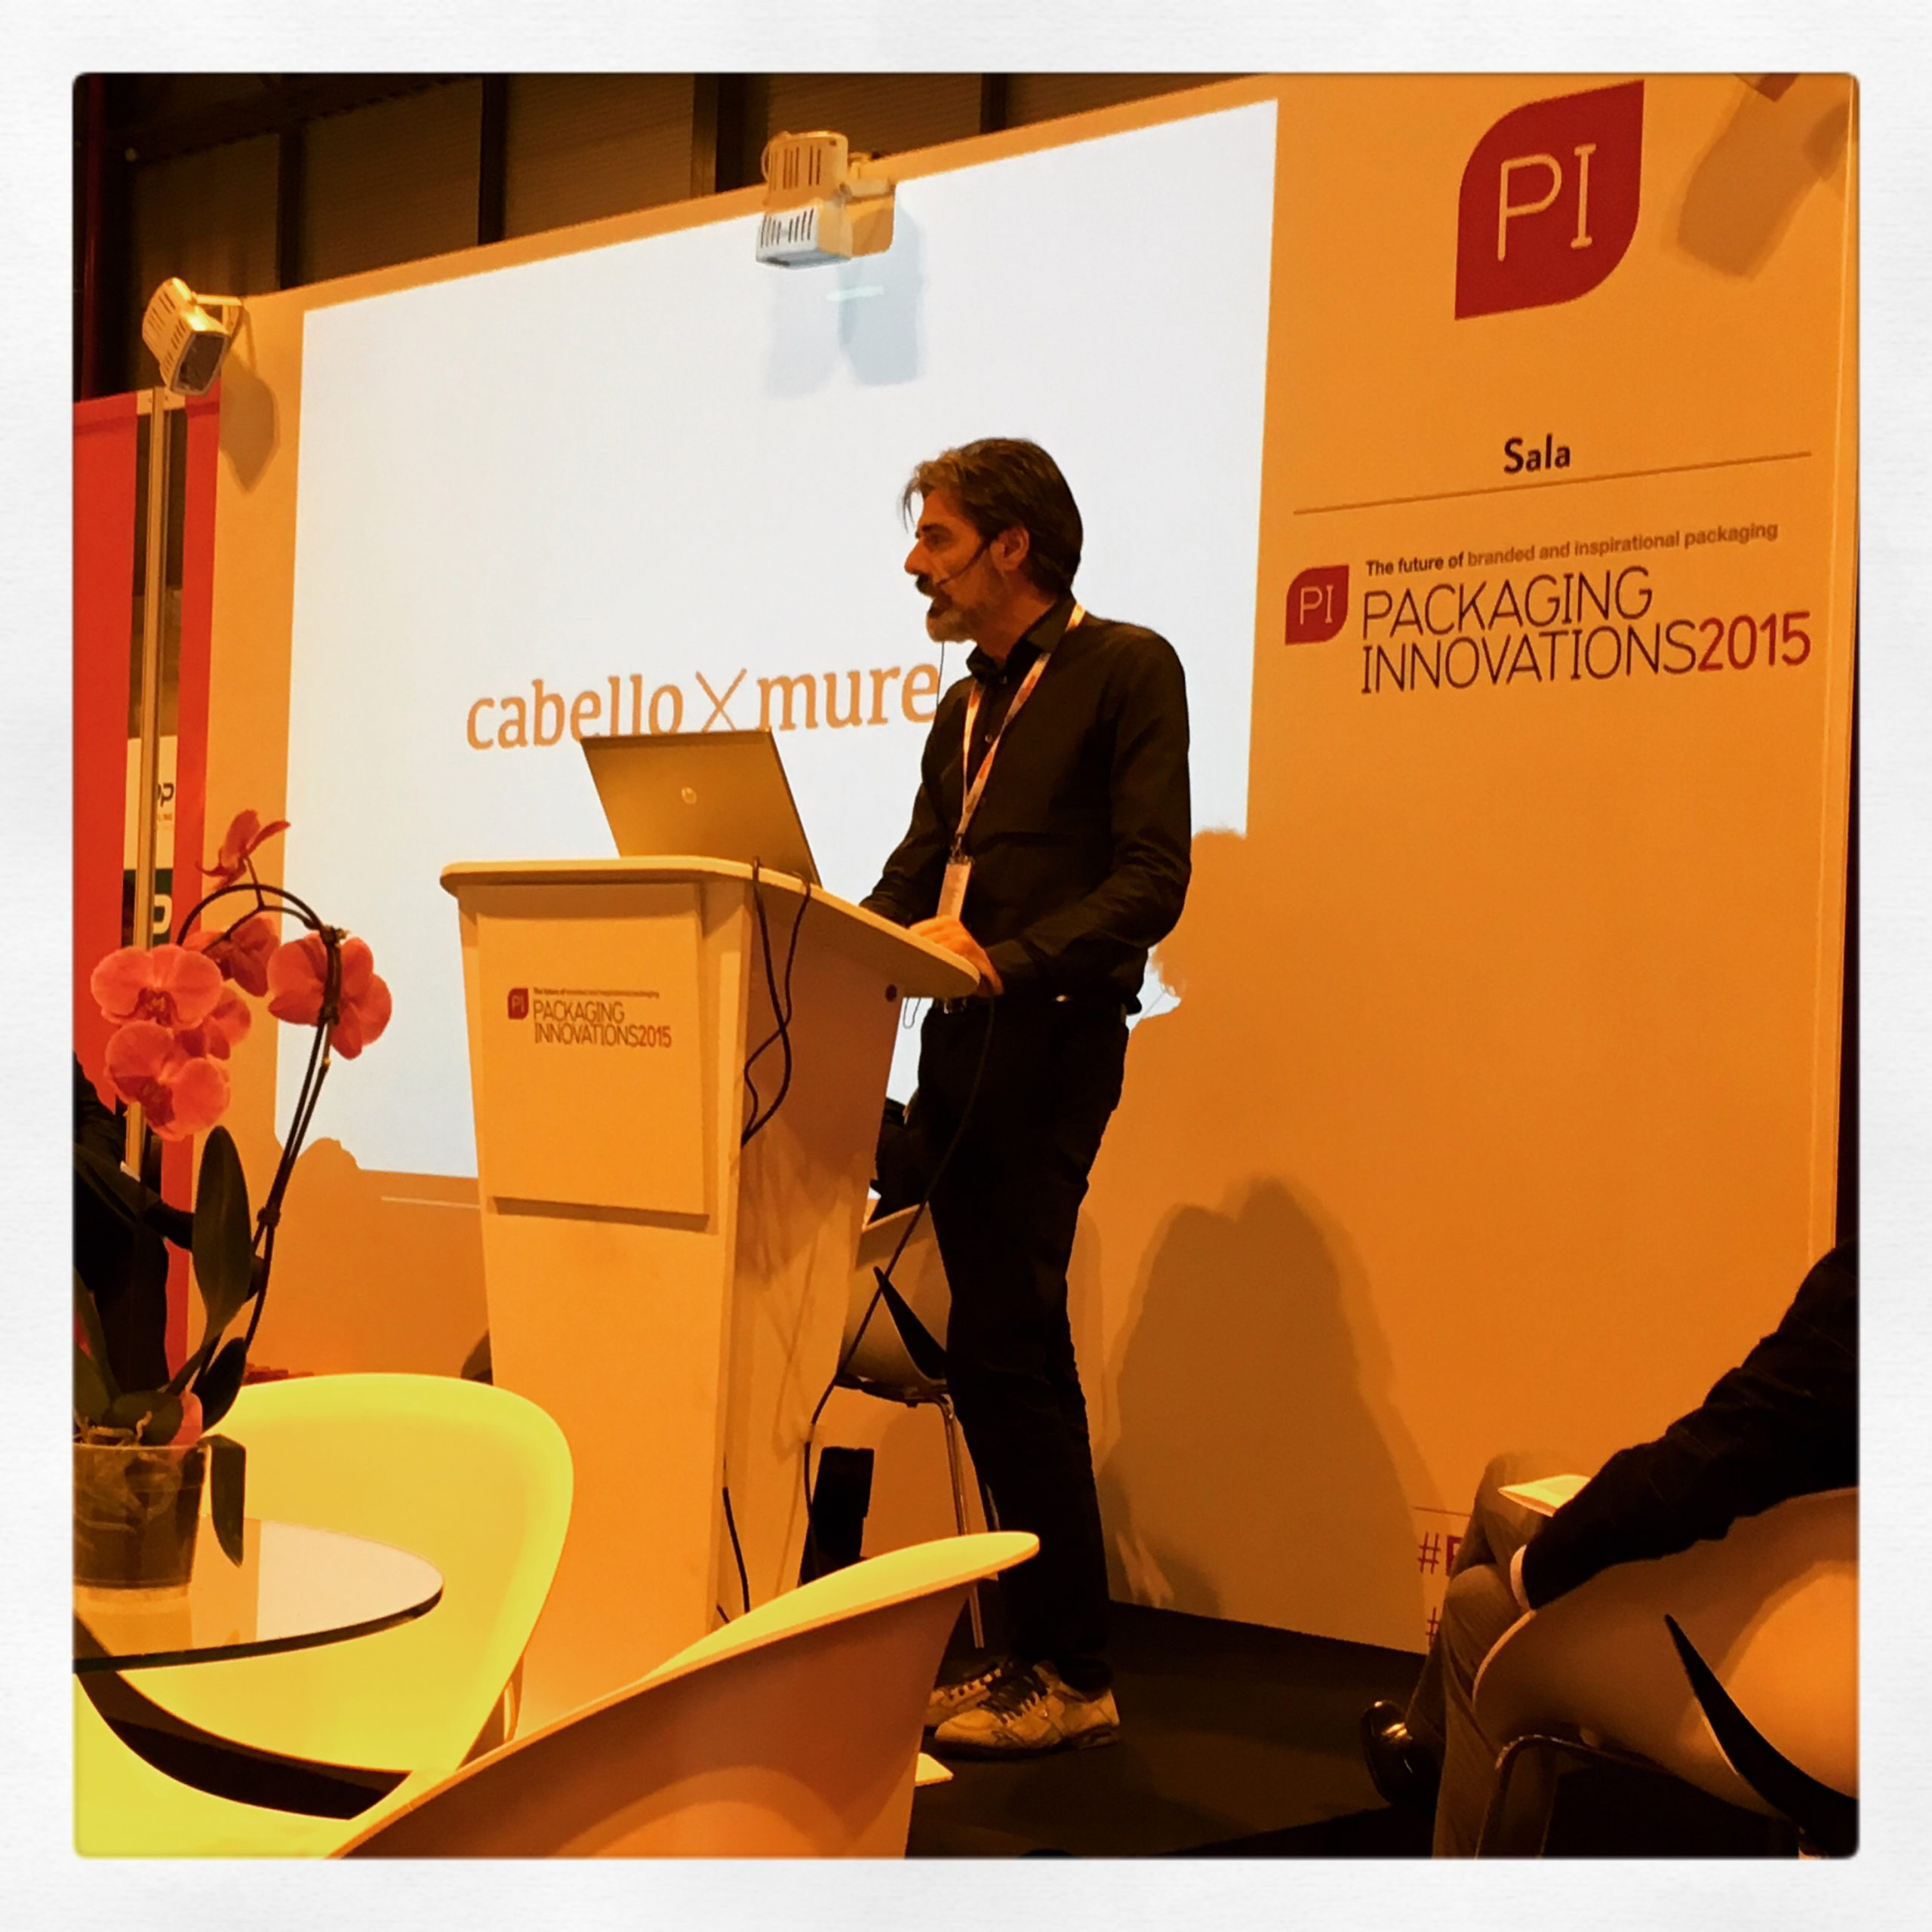 Participamos en la mesa de expertos celebrada en Packaging Innovations 2015